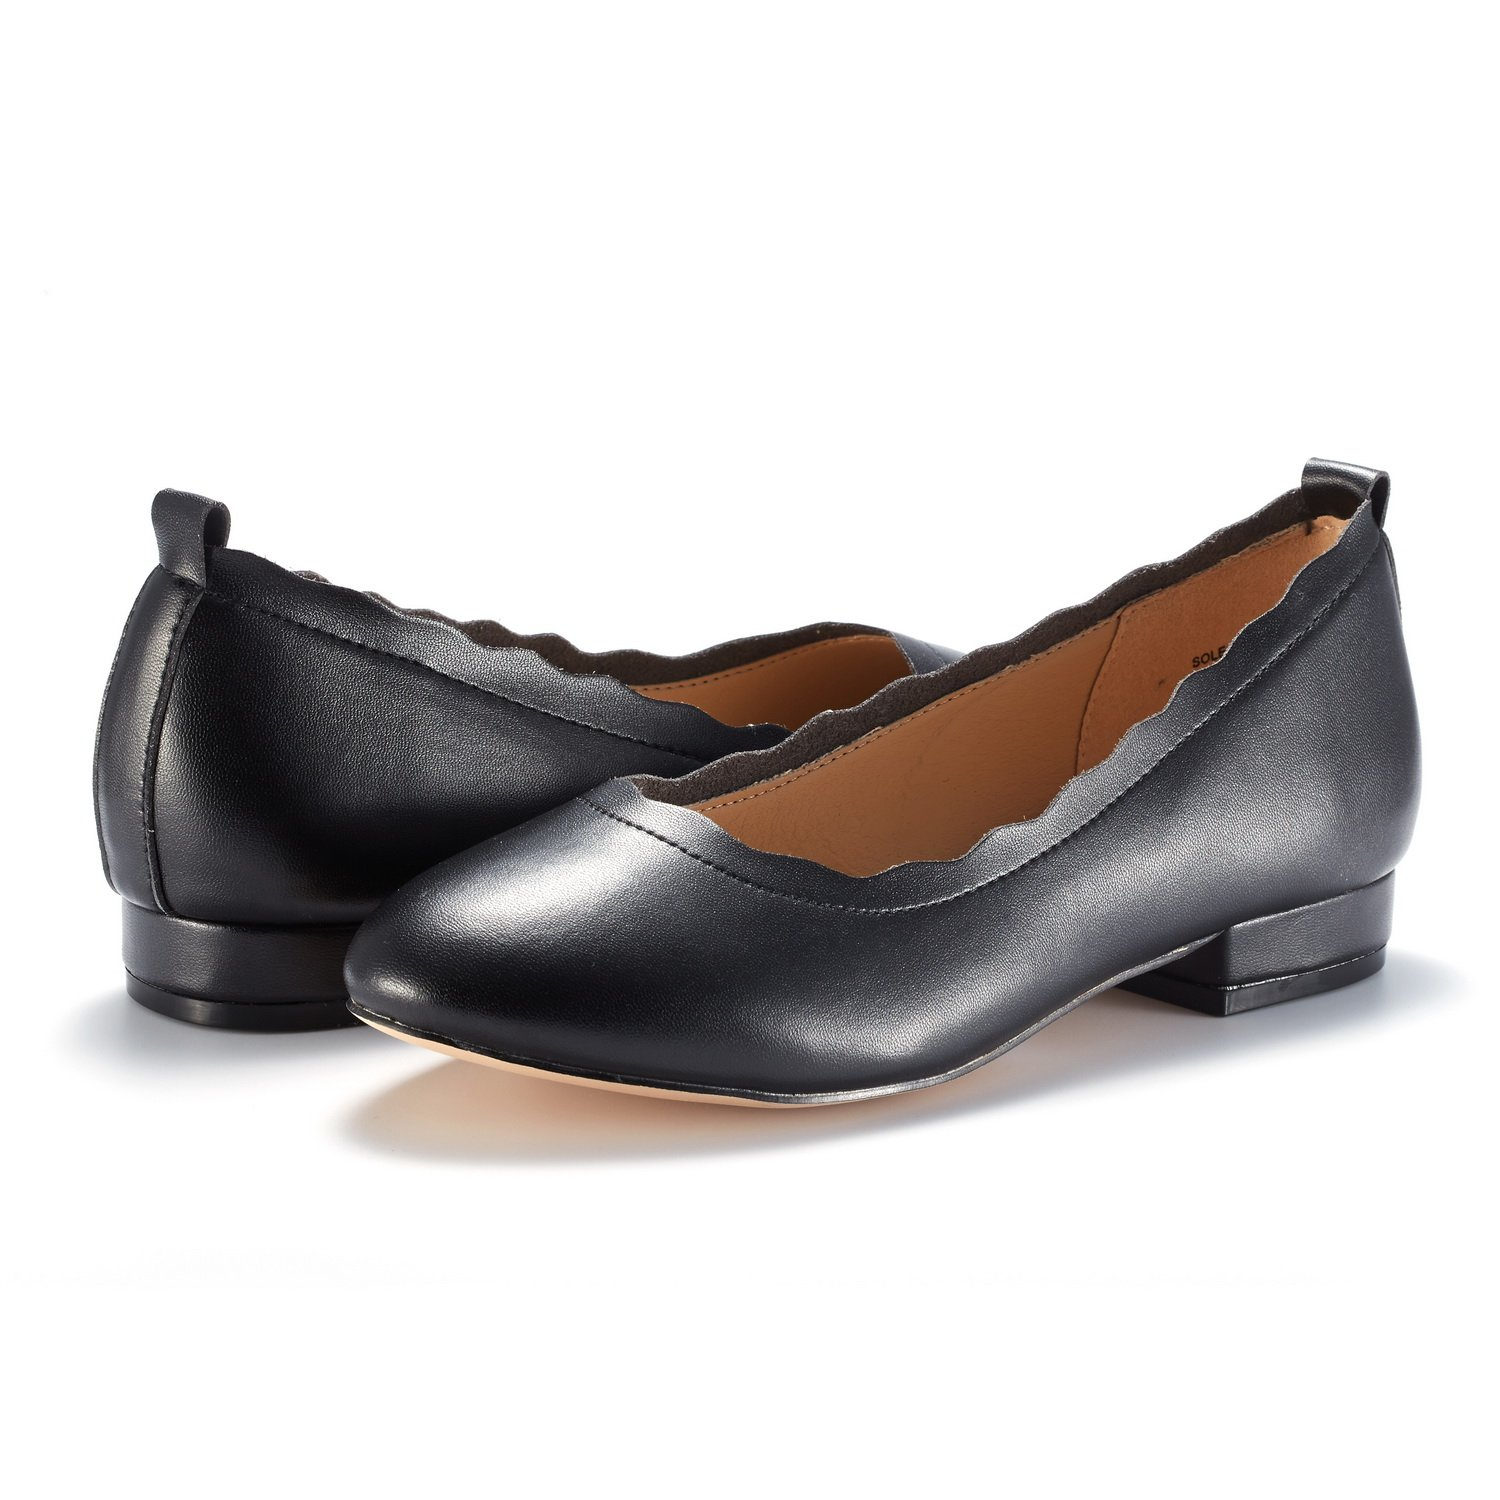 DREAM PAIRS Women's Sole_Elle Black/PU Fashion Low Stacked Slip On Flats Shoes Size 8.5 M US by DREAM PAIRS (Image #4)